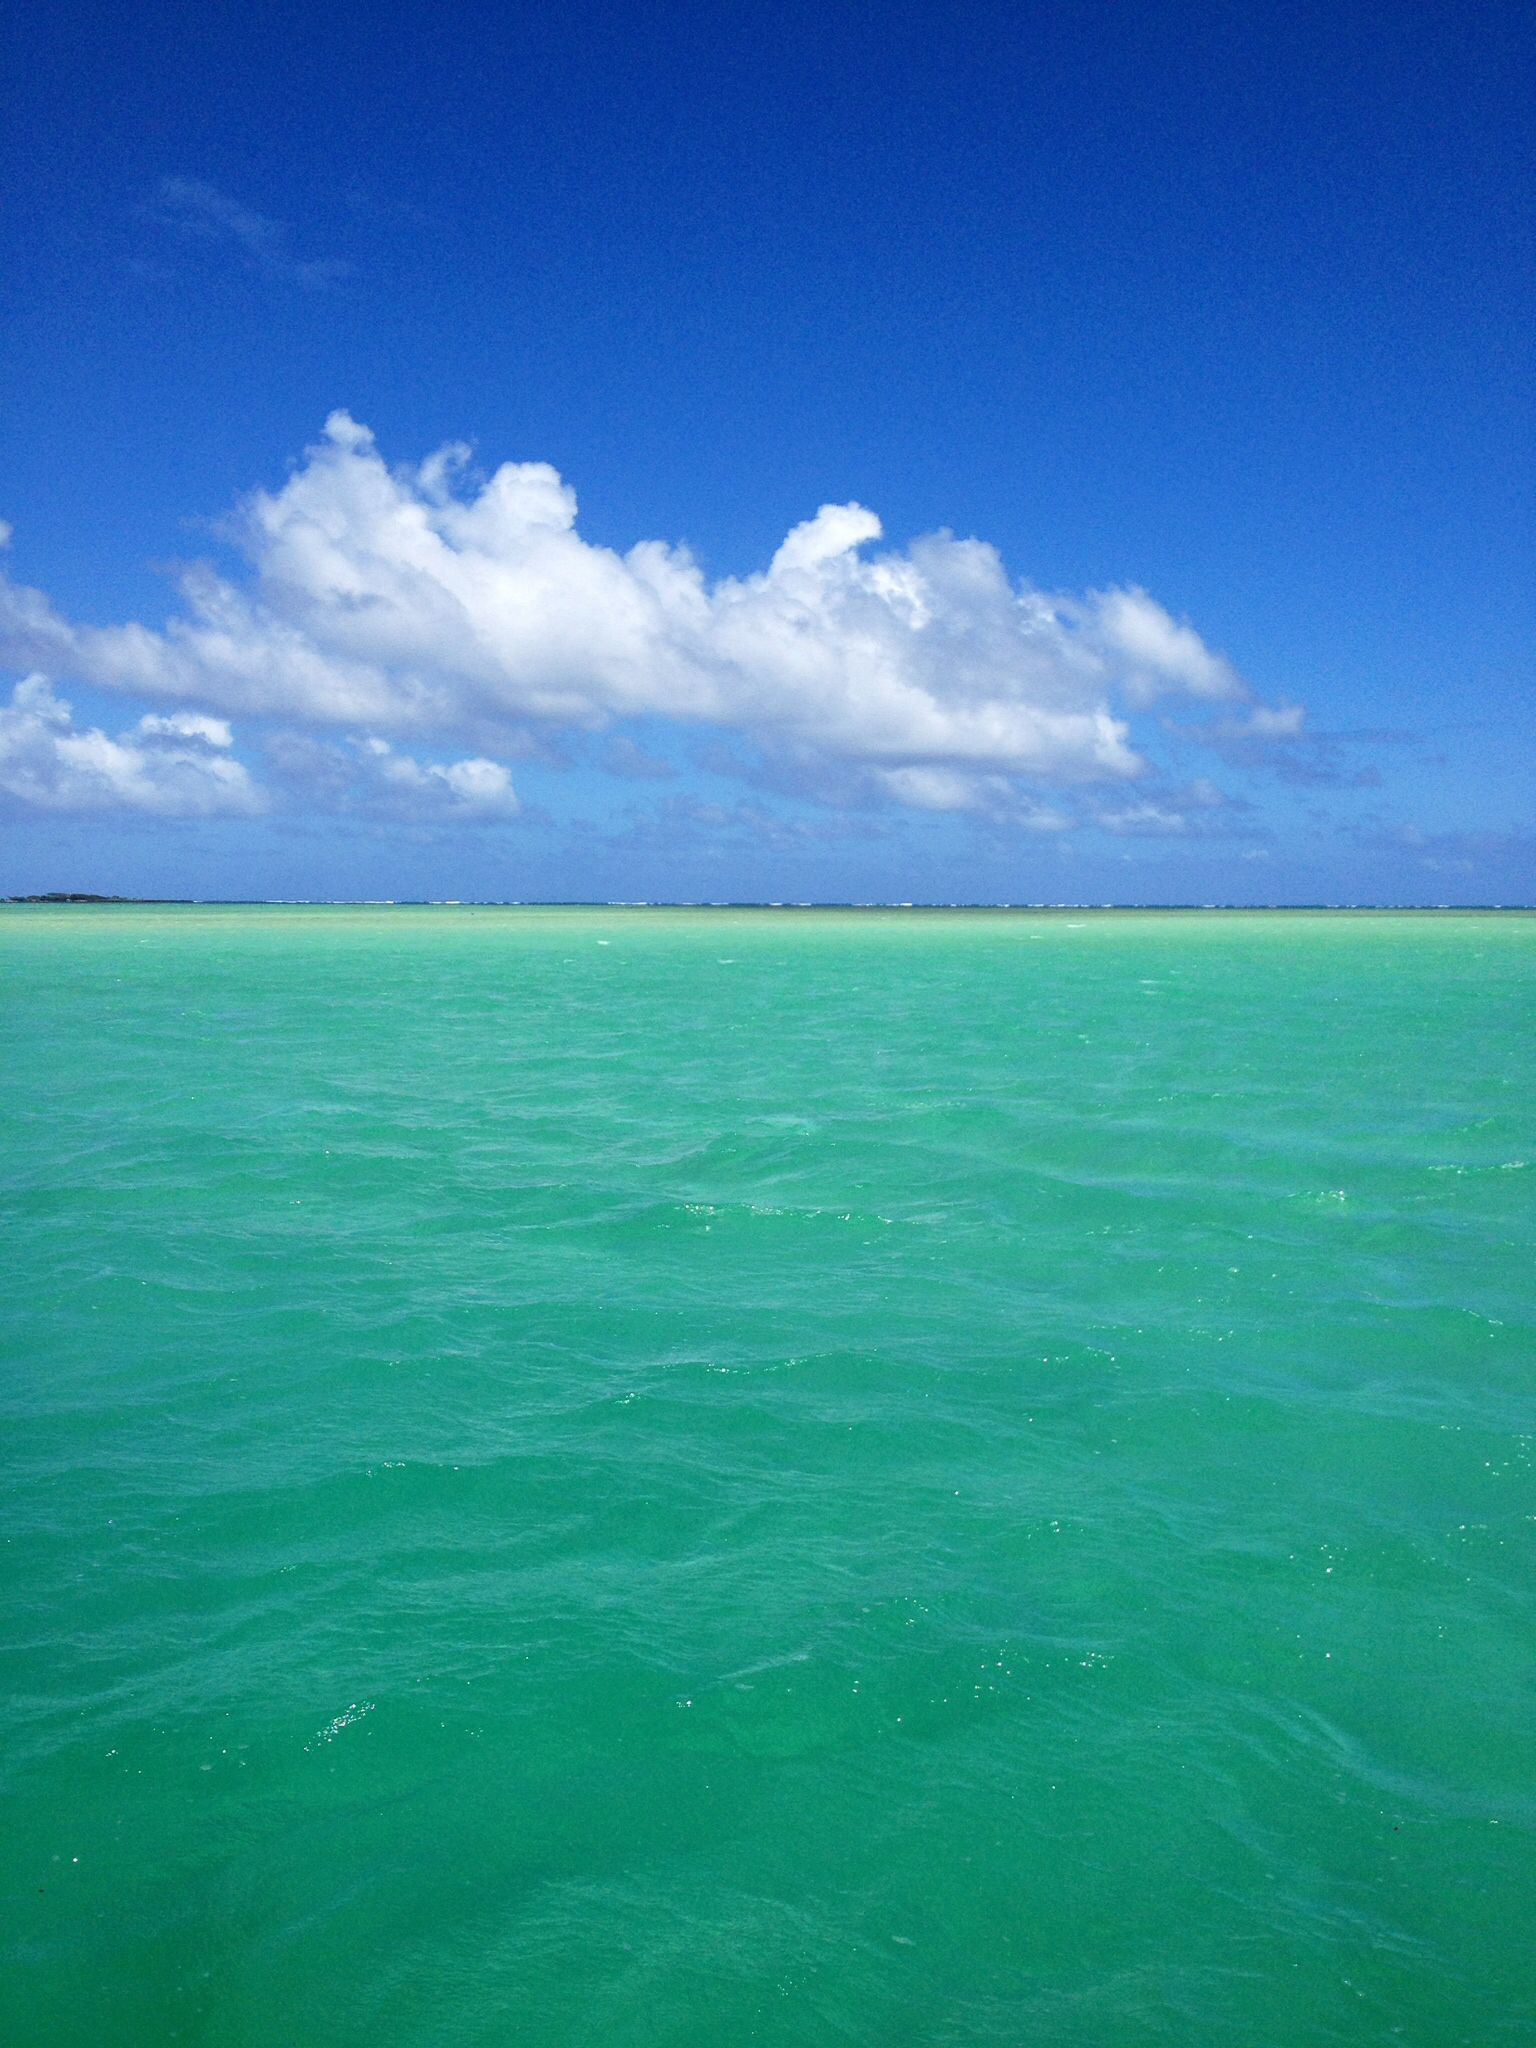 kaneohe bay sandbar this was the view from our backyard when i